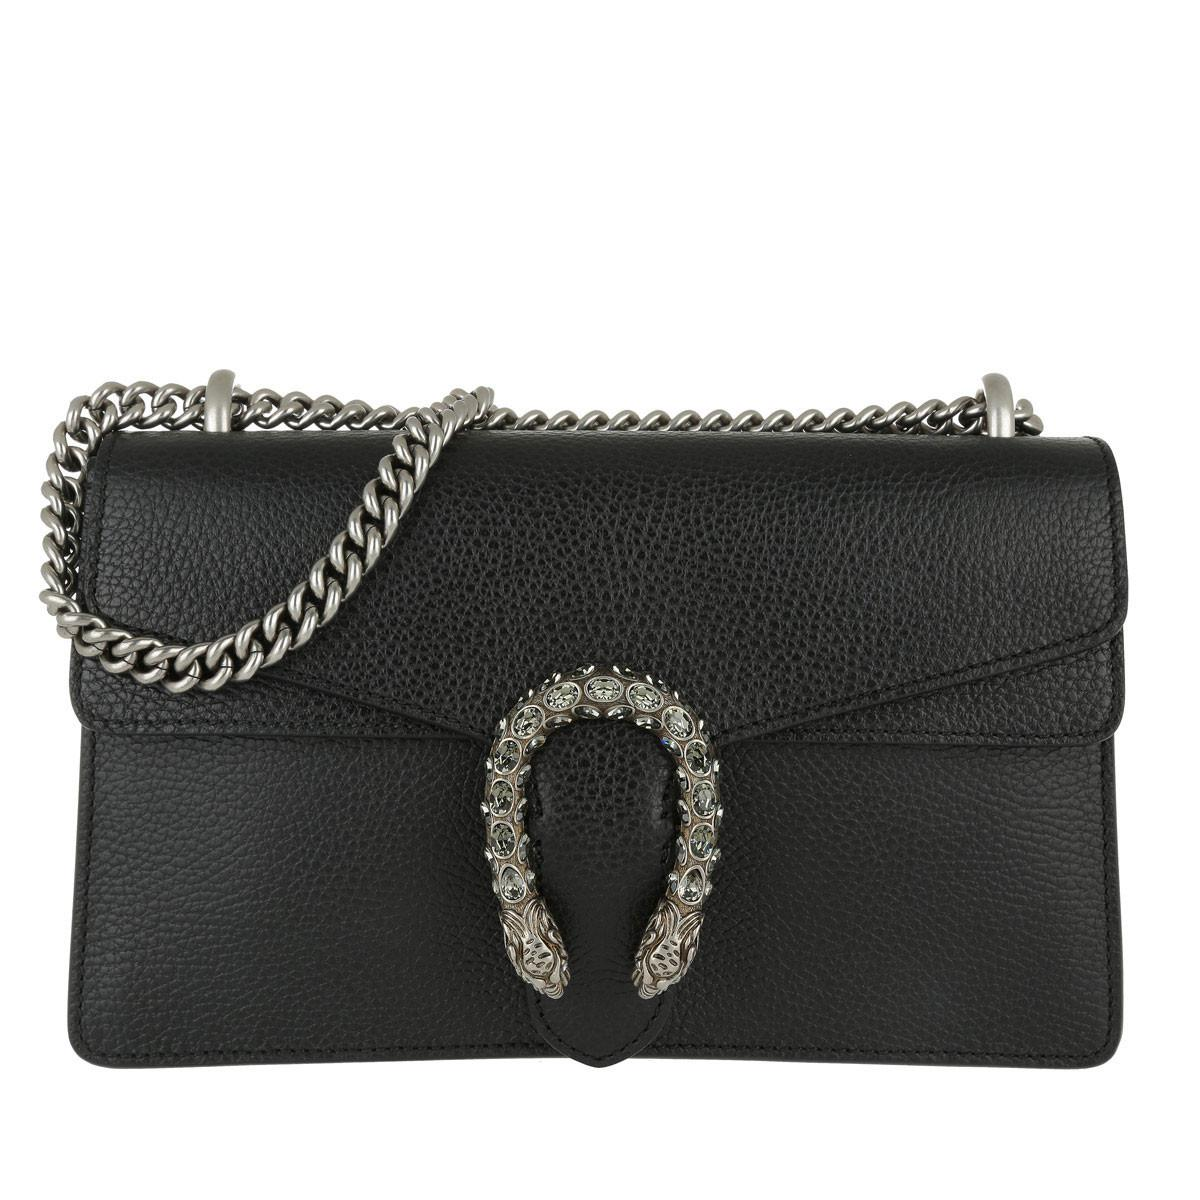 36bbb5f3493892 Gucci Dionysus Small Leather Shoulder Bag in Black - Save 21% - Lyst